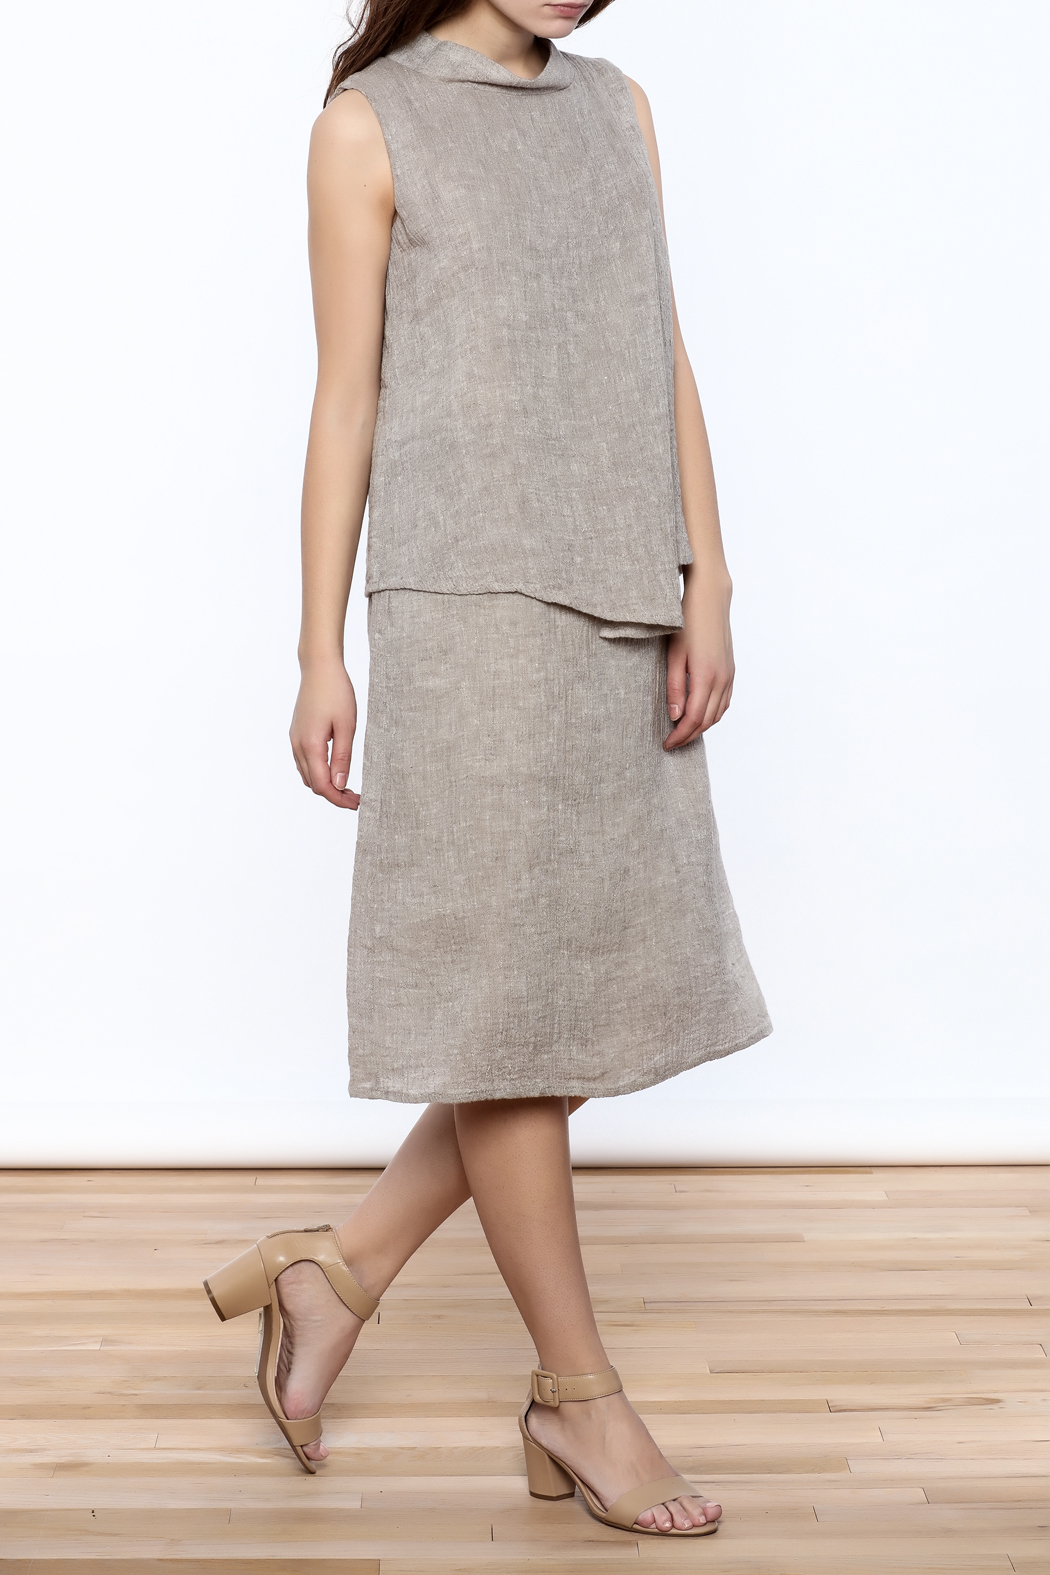 Ronen Chen Asymmetrical Linen Dress - Main Image